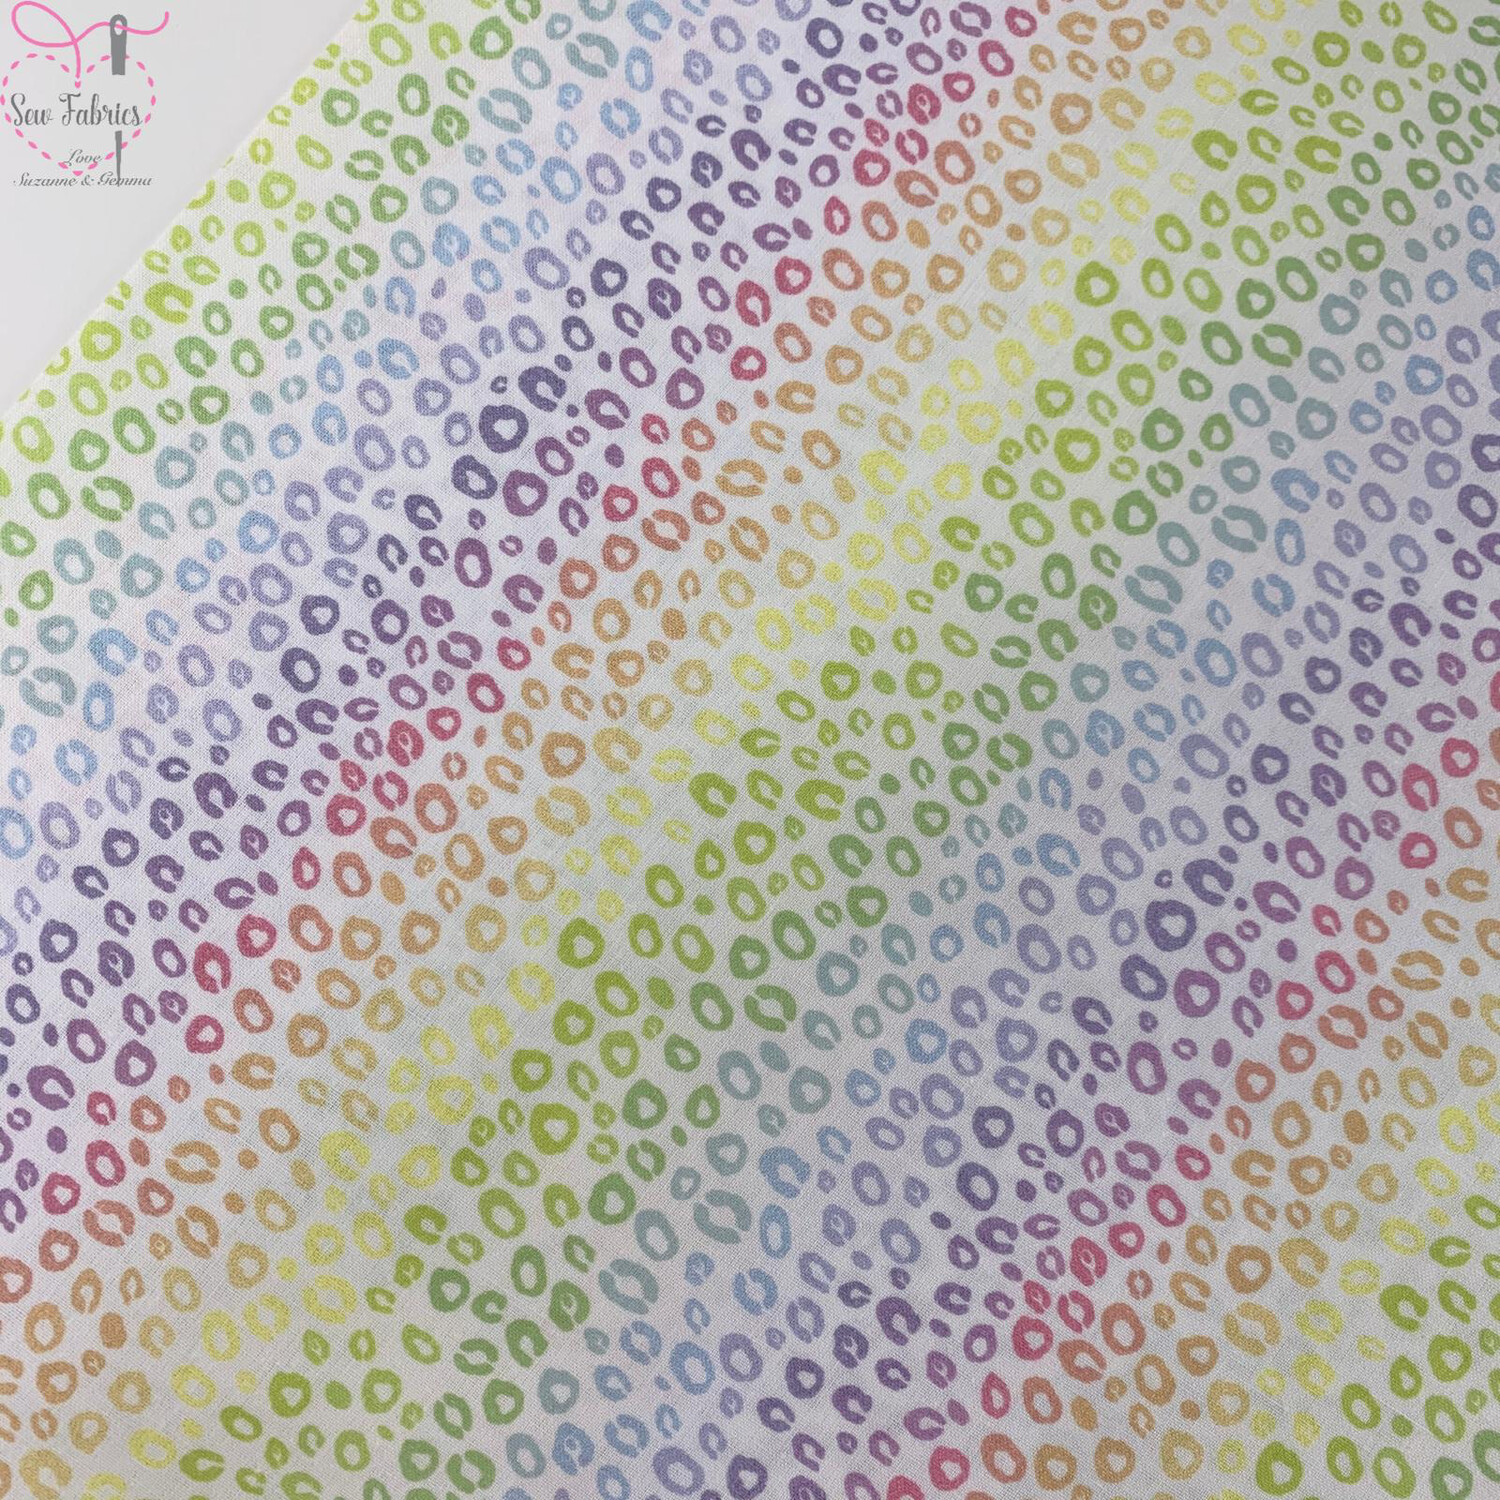 "Pastel Rainbow Leopard Print Digital Cotton Design, The Little Johnny Collection Fabric 100% Cotton 59"" Wide Width"